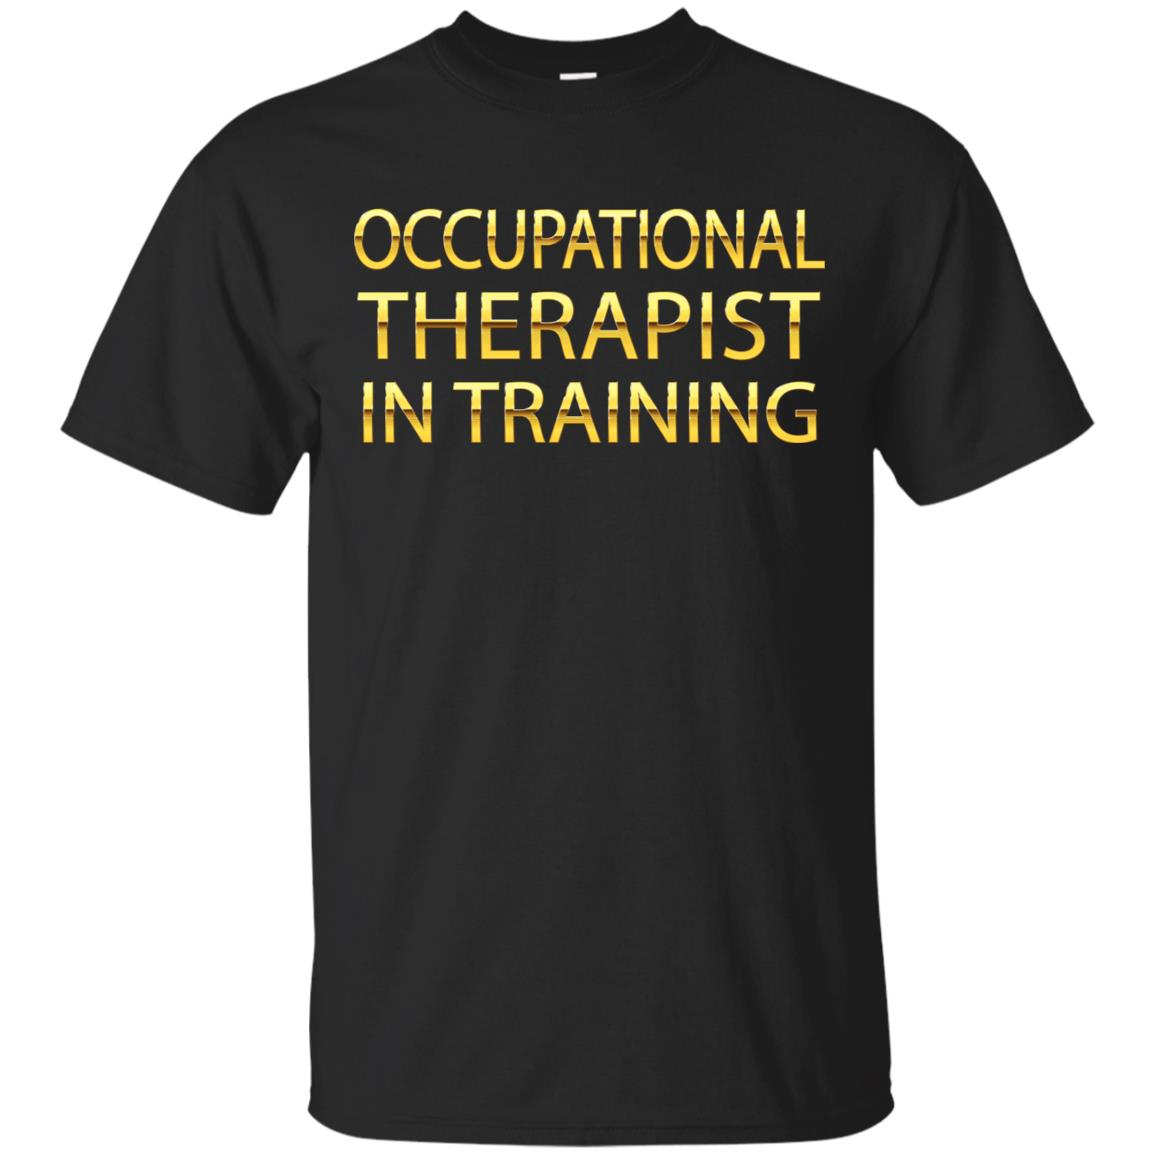 Occupational therapist in training student Unisex Short Sleeve